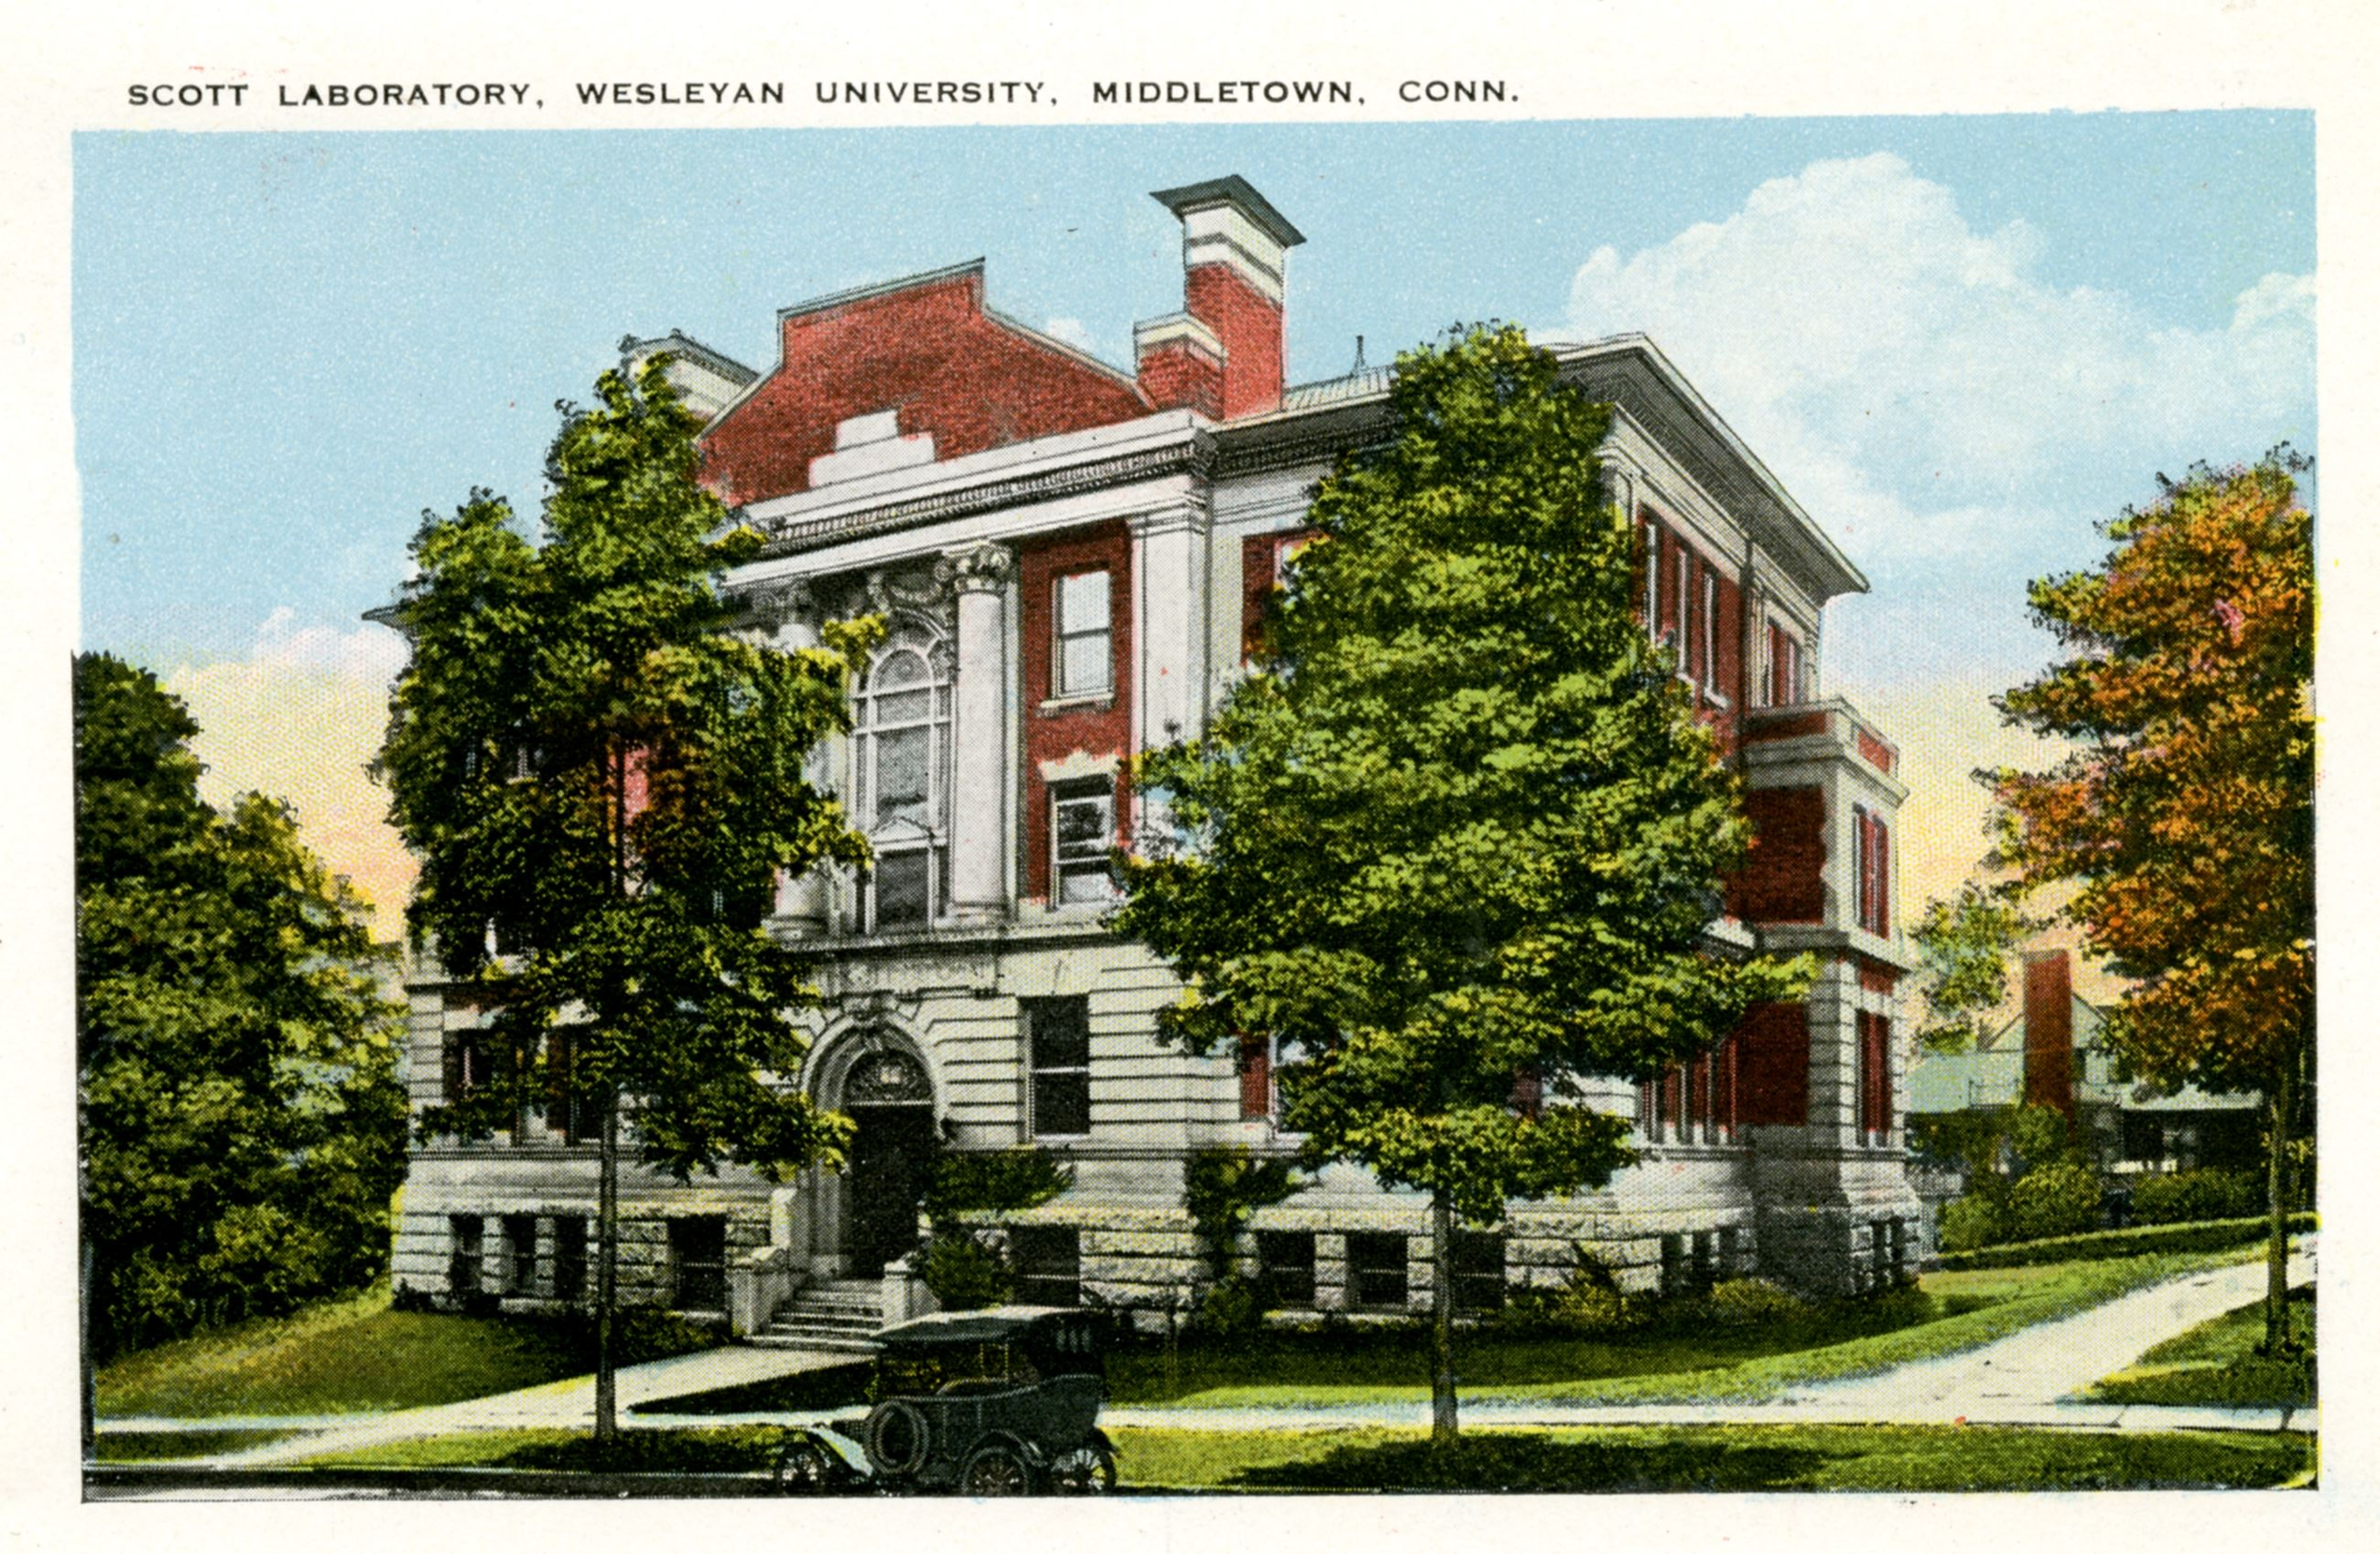 Historical Image of Scott Laboratory, Wesleyan University